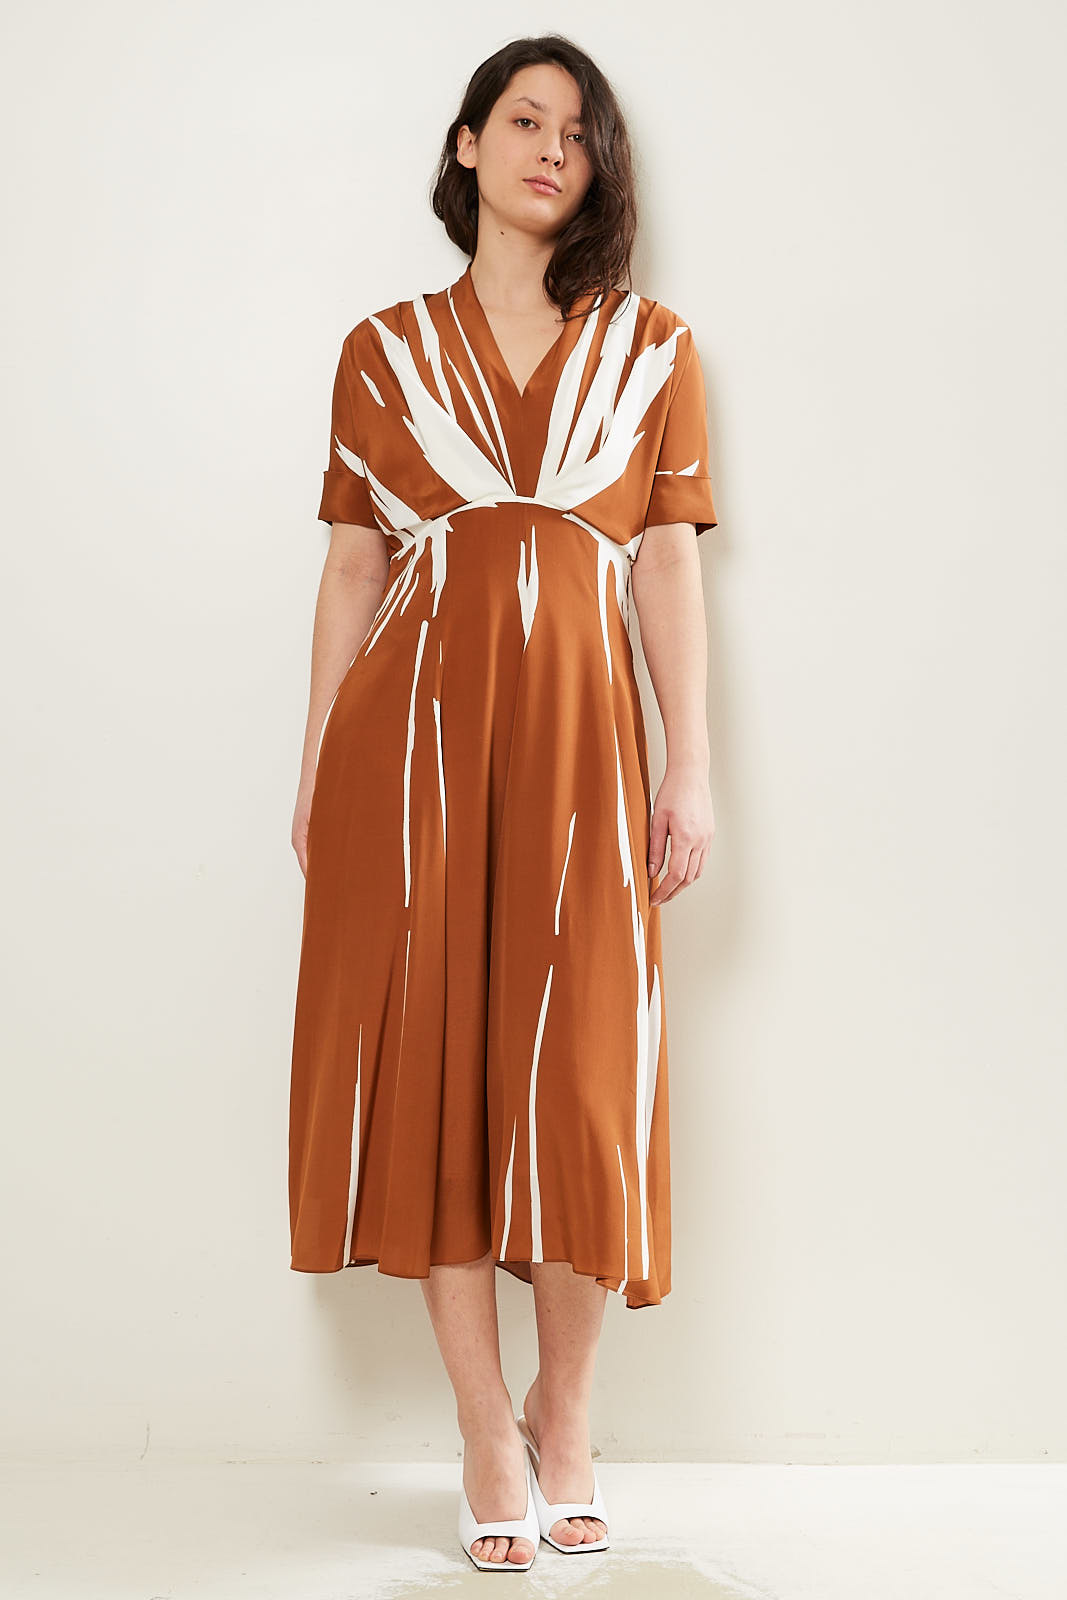 Paul Smith womens dress